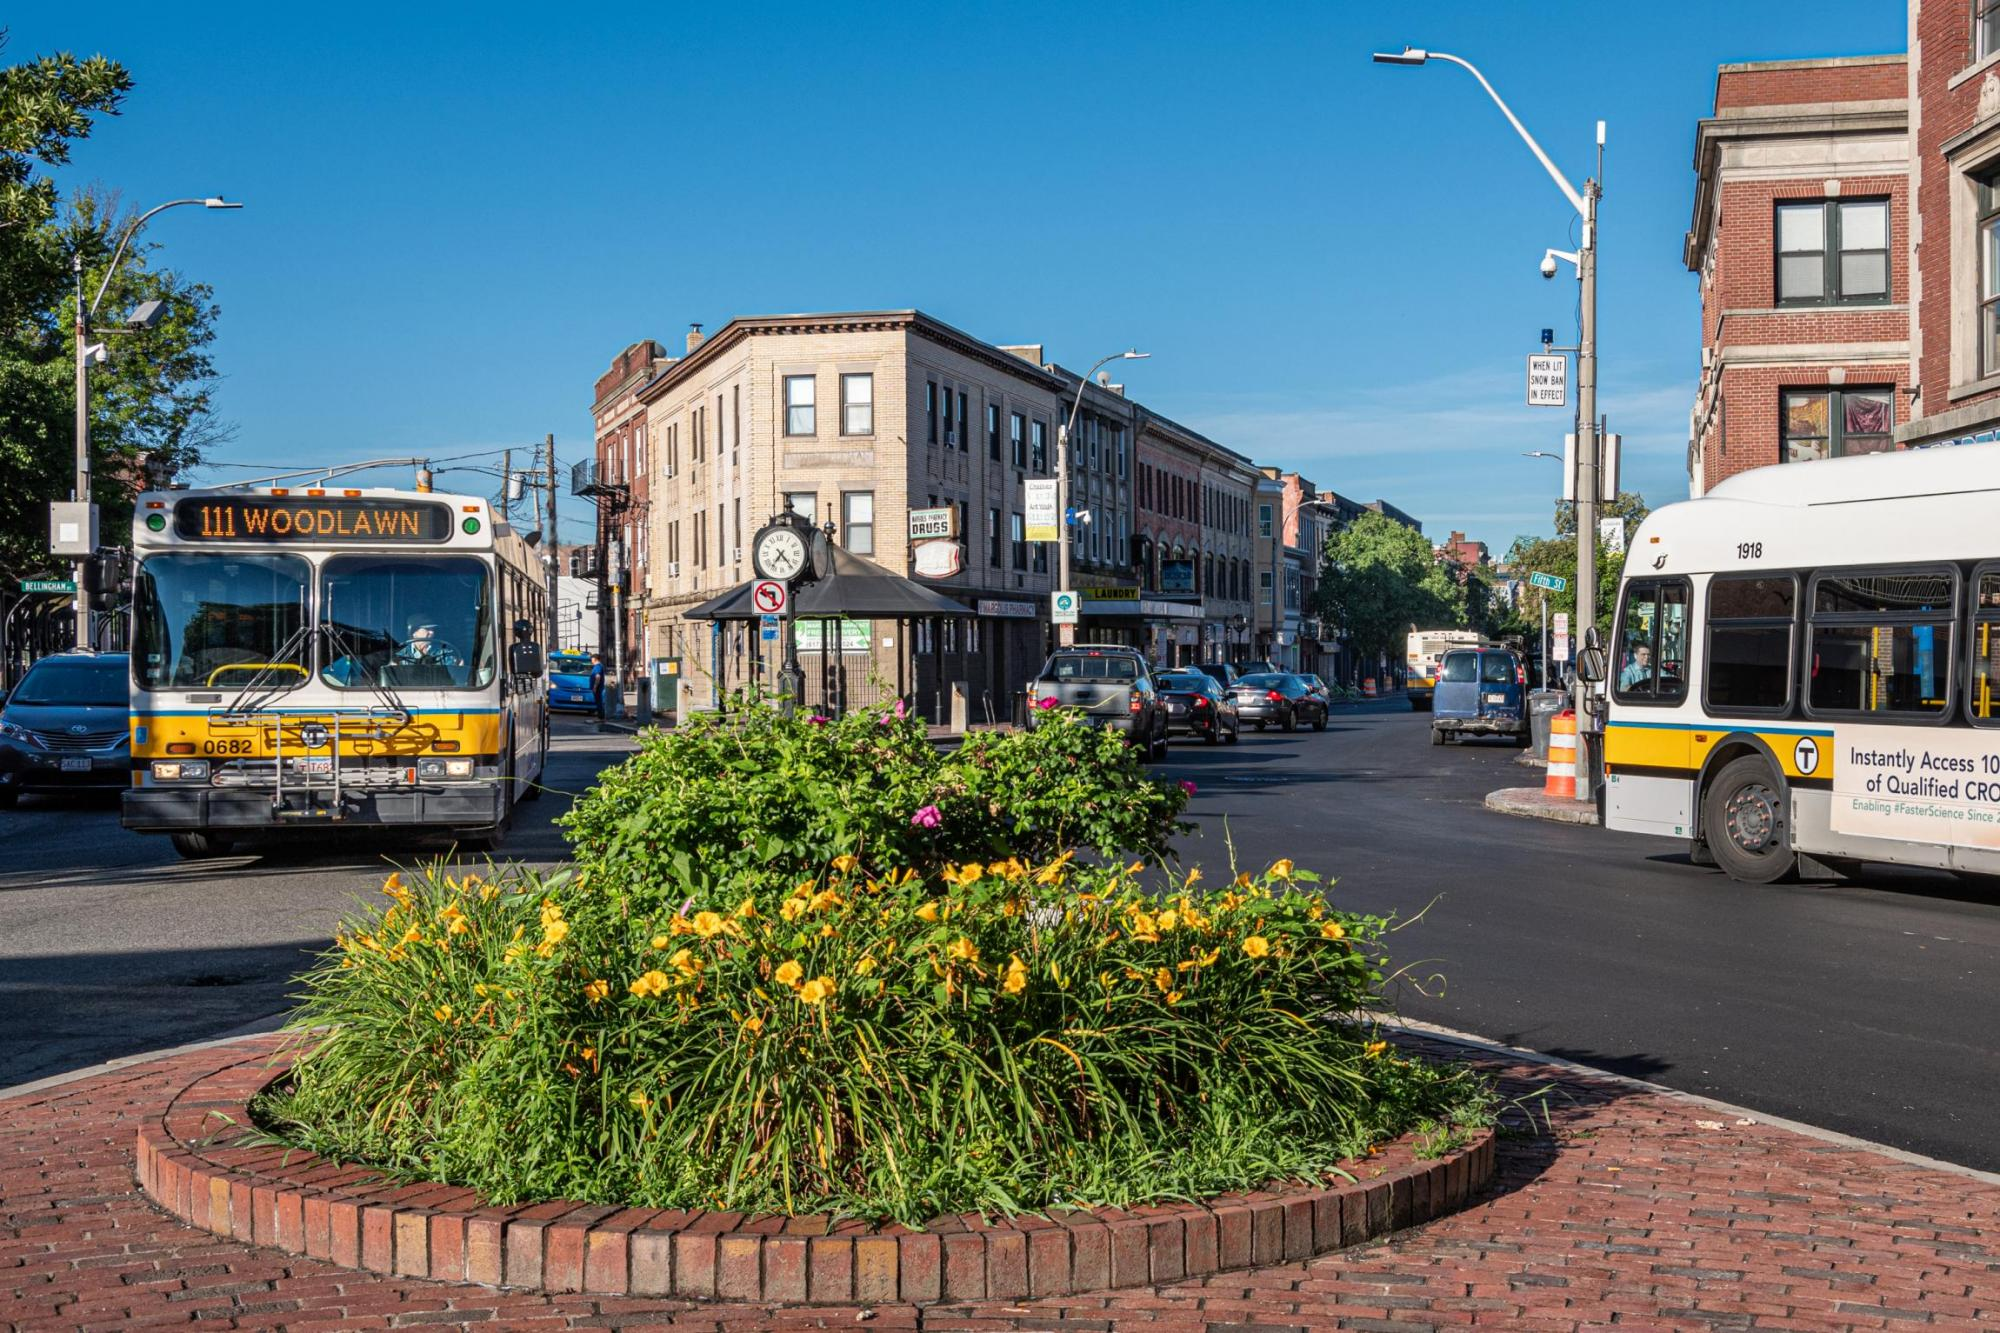 Route 111 bus at a roundabout in Chelsea, during summertime